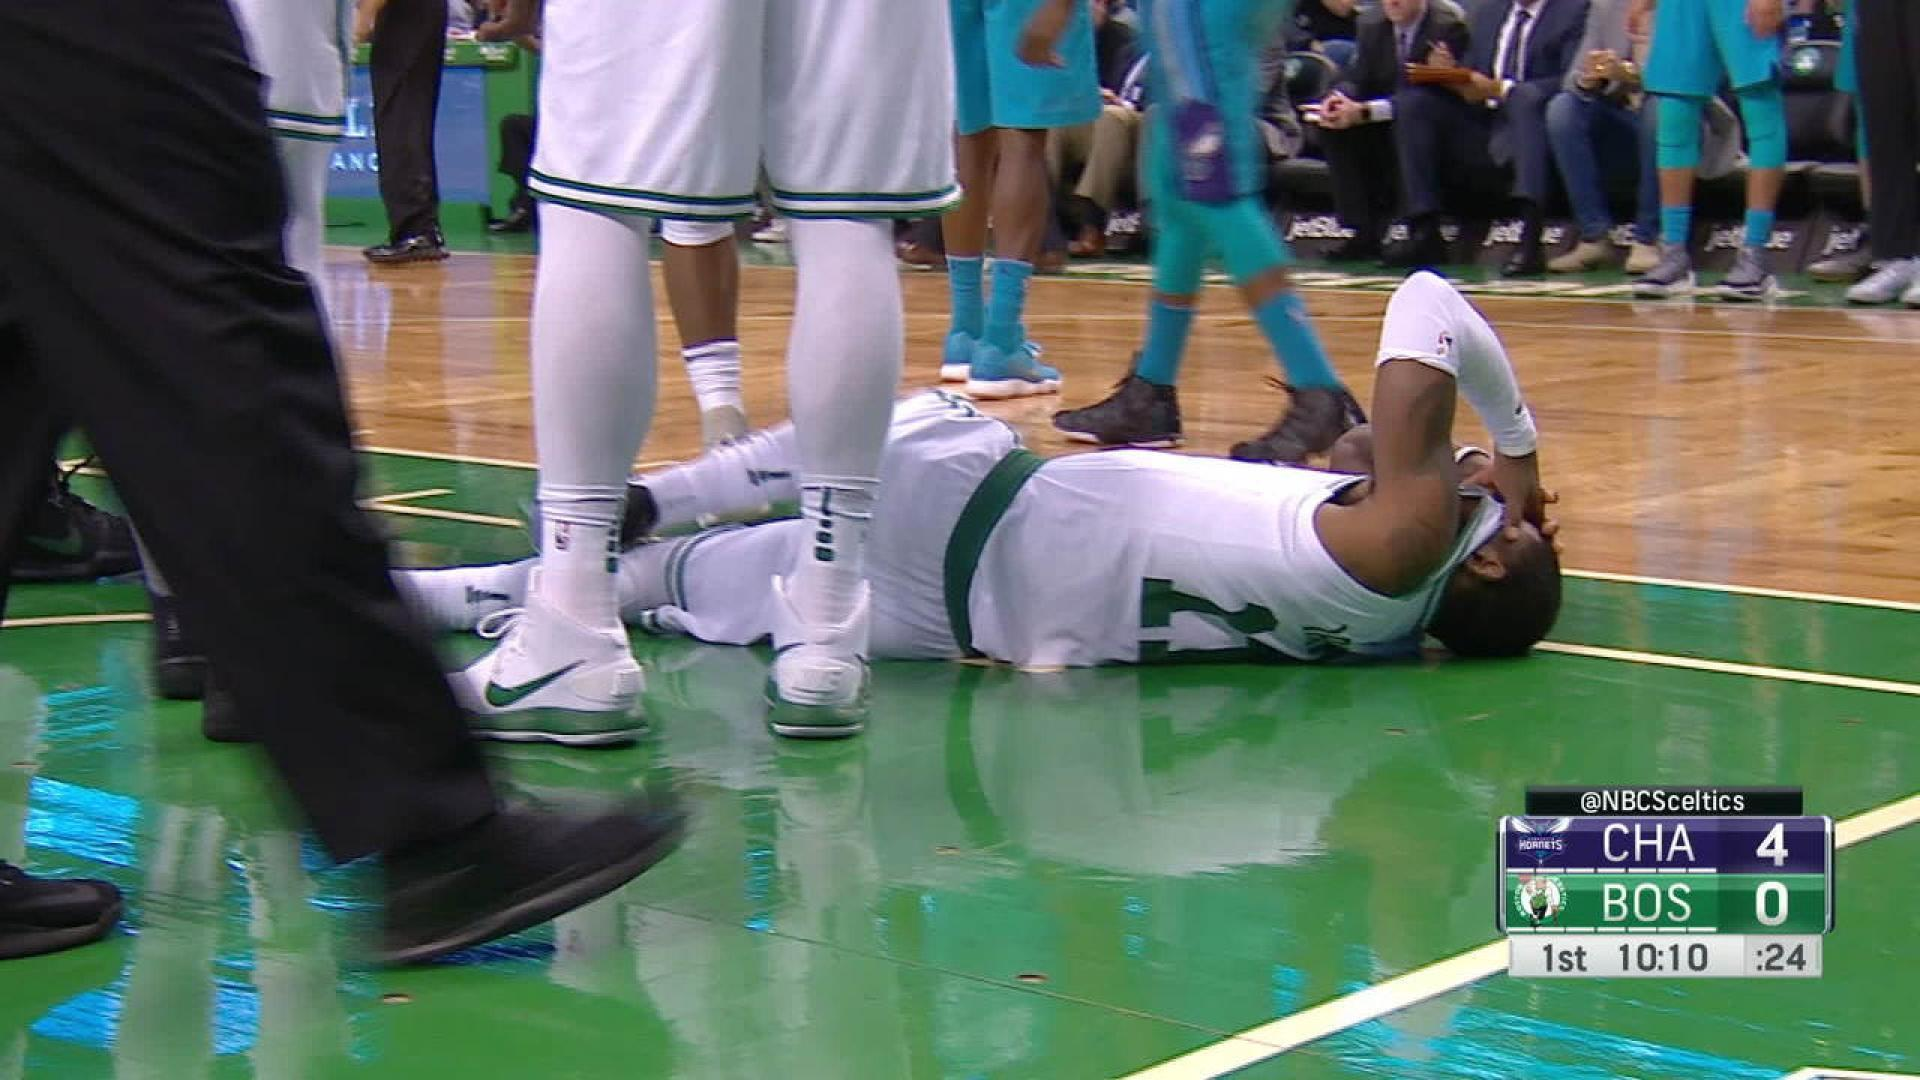 Kyrie Irving Injury: Celtics Star Out For Game With Concussion Symptoms